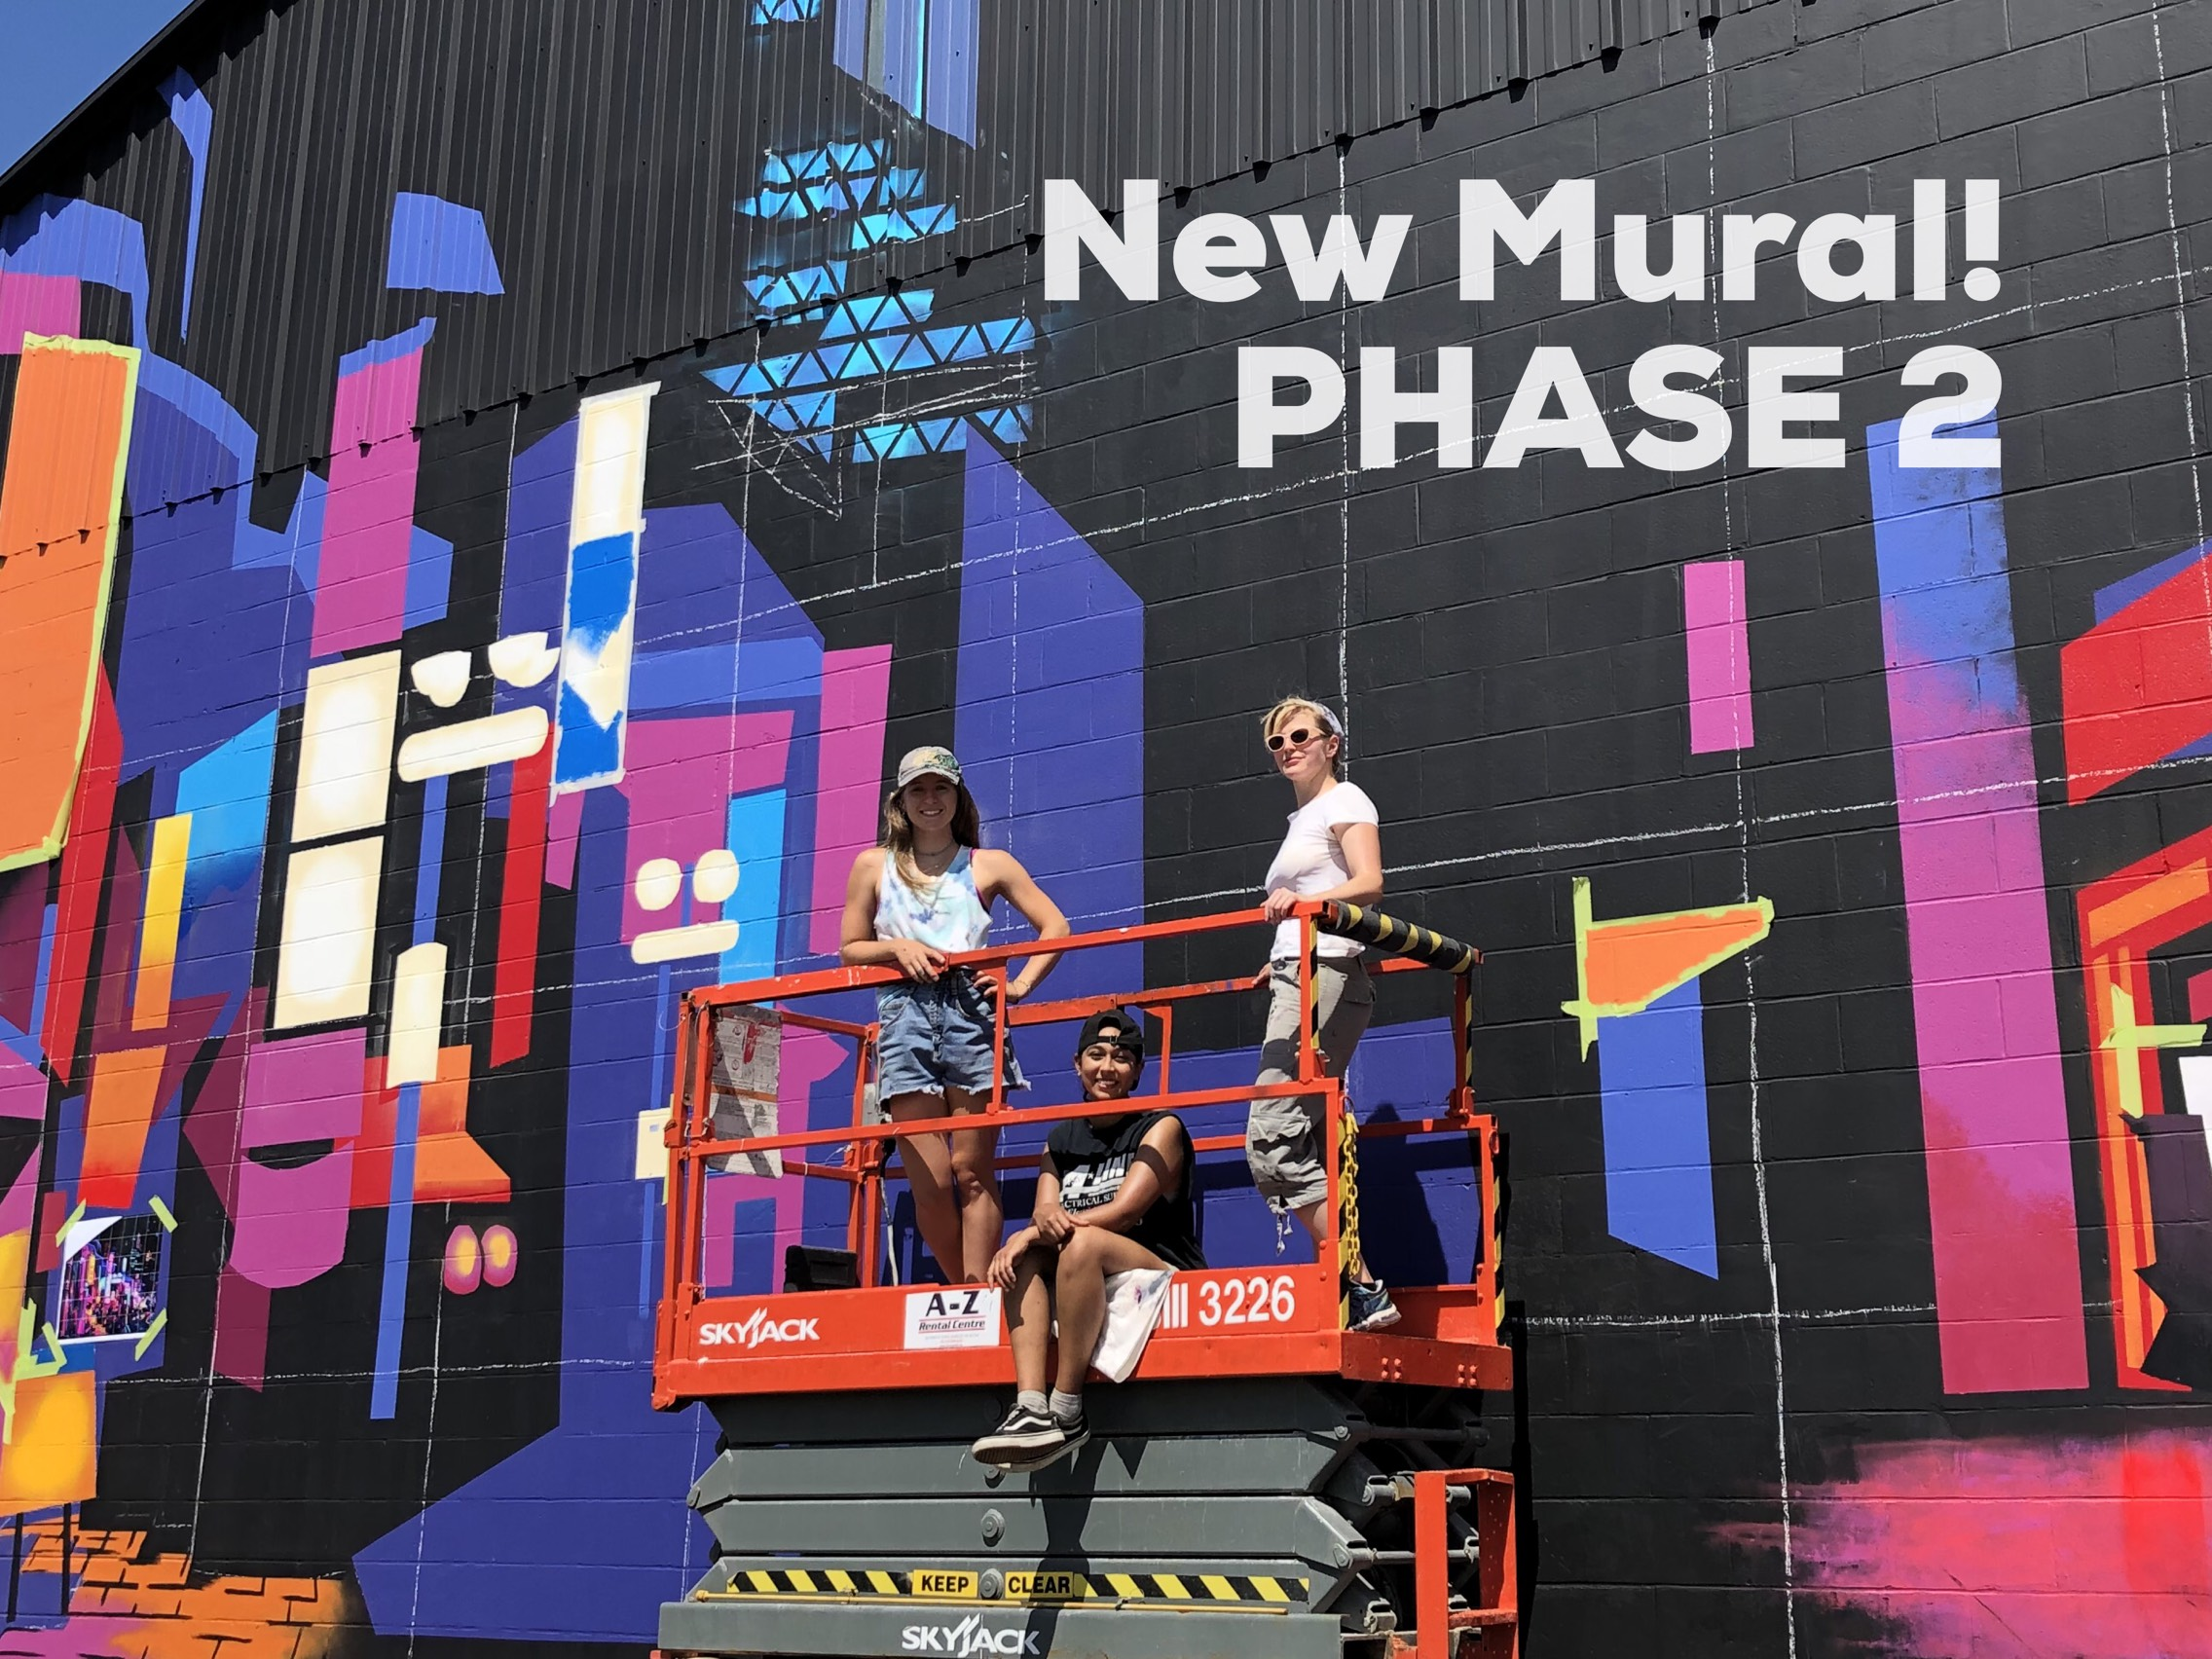 mural phase 2